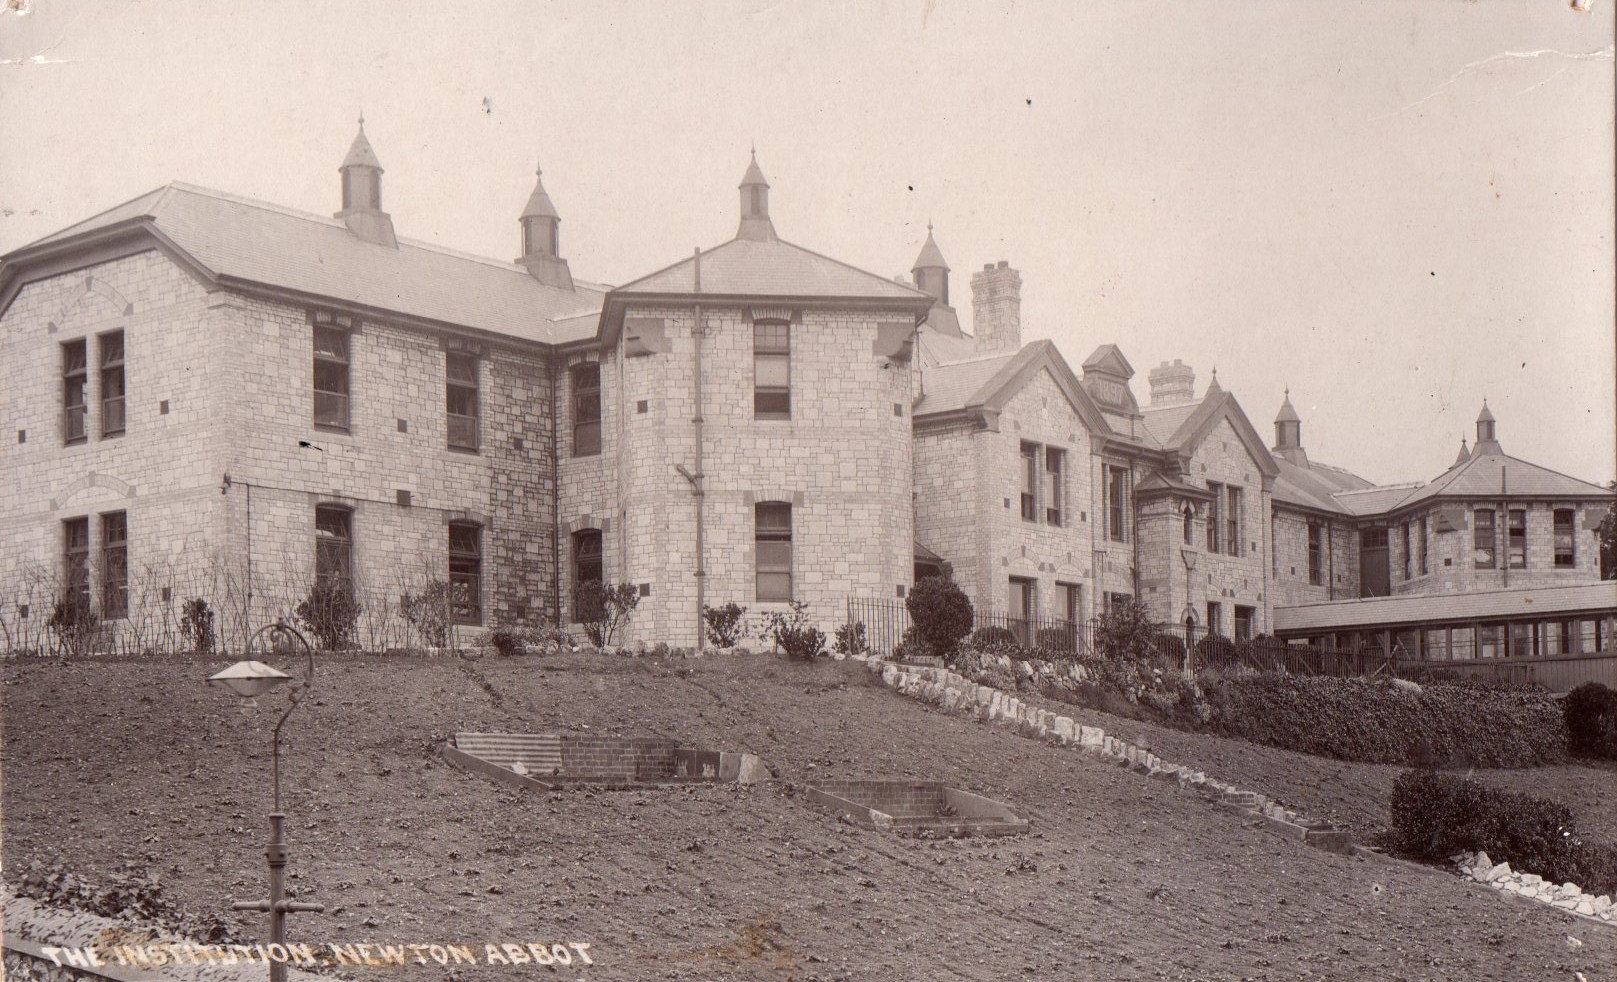 The Old Workhouse and Hospital